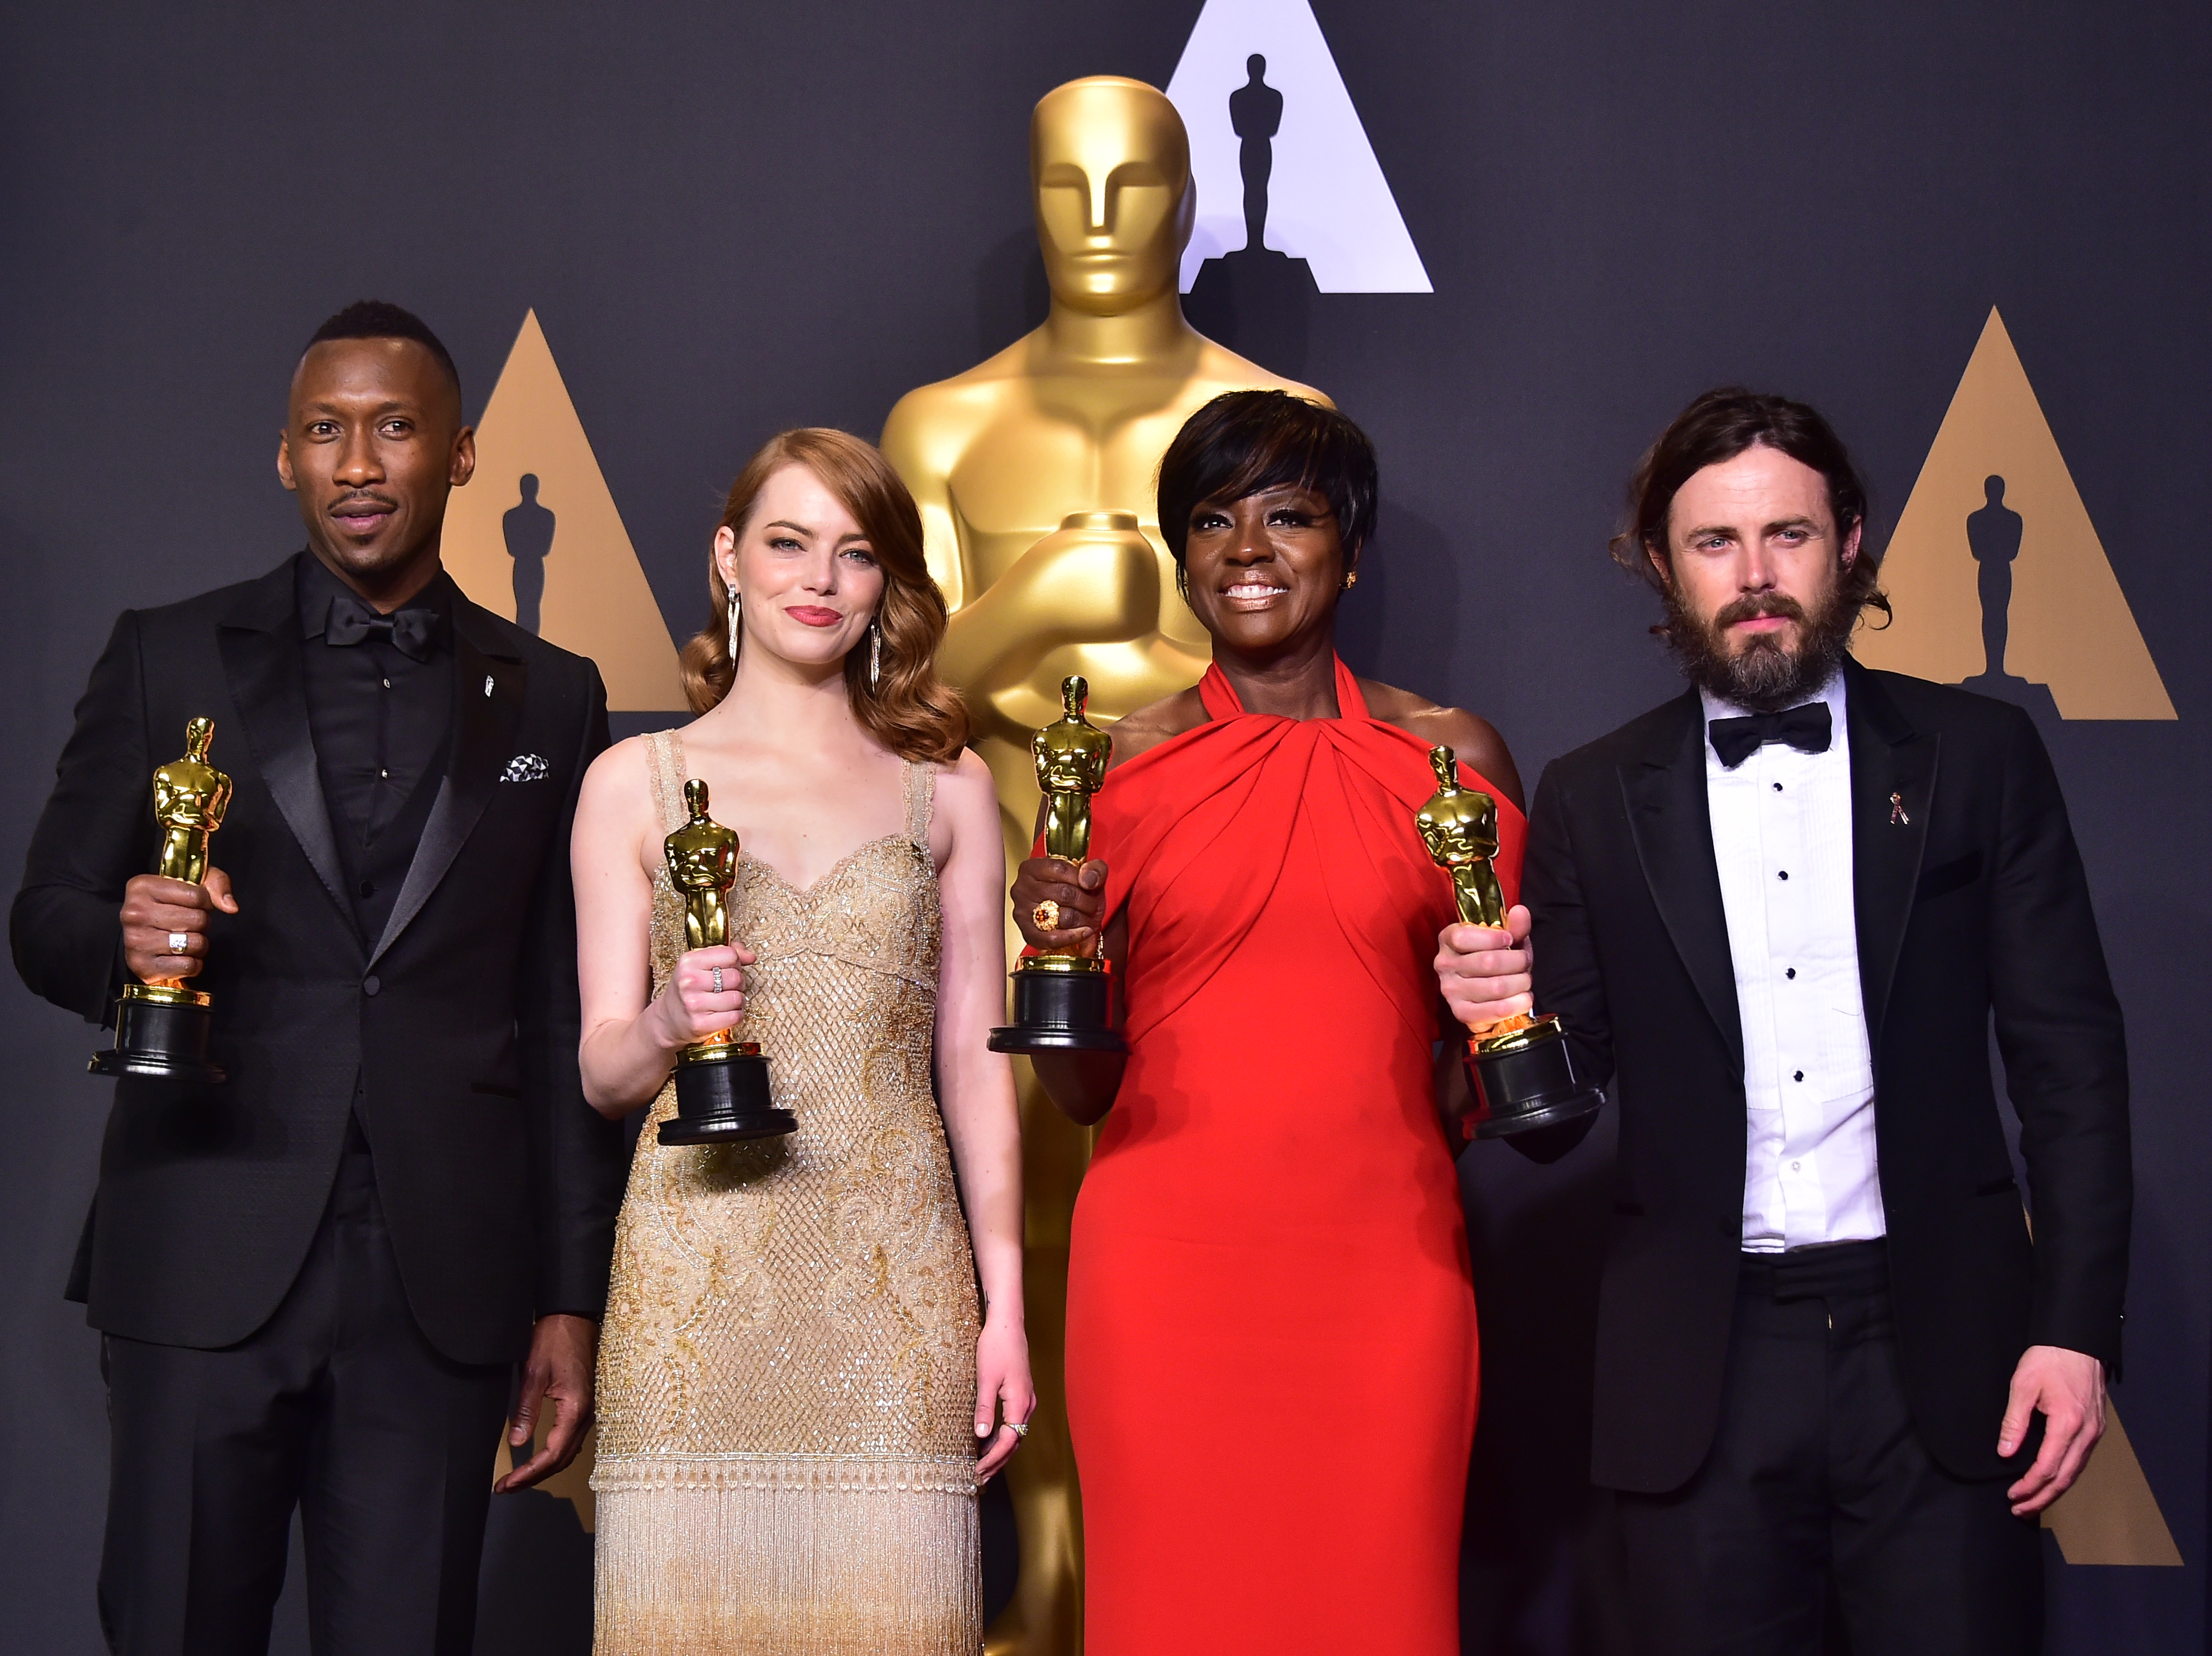 (l-R): Best Supporting Actor Mahershala Ali, Best Actress Emma Stone, Best Supporting Actress Viola Davis and Best Actor Casey Affleck pose in the press room during the 89th Oscars on February 26, 2017 in Hollywood, California. / AFP PHOTO / FREDERIC J. BROWN